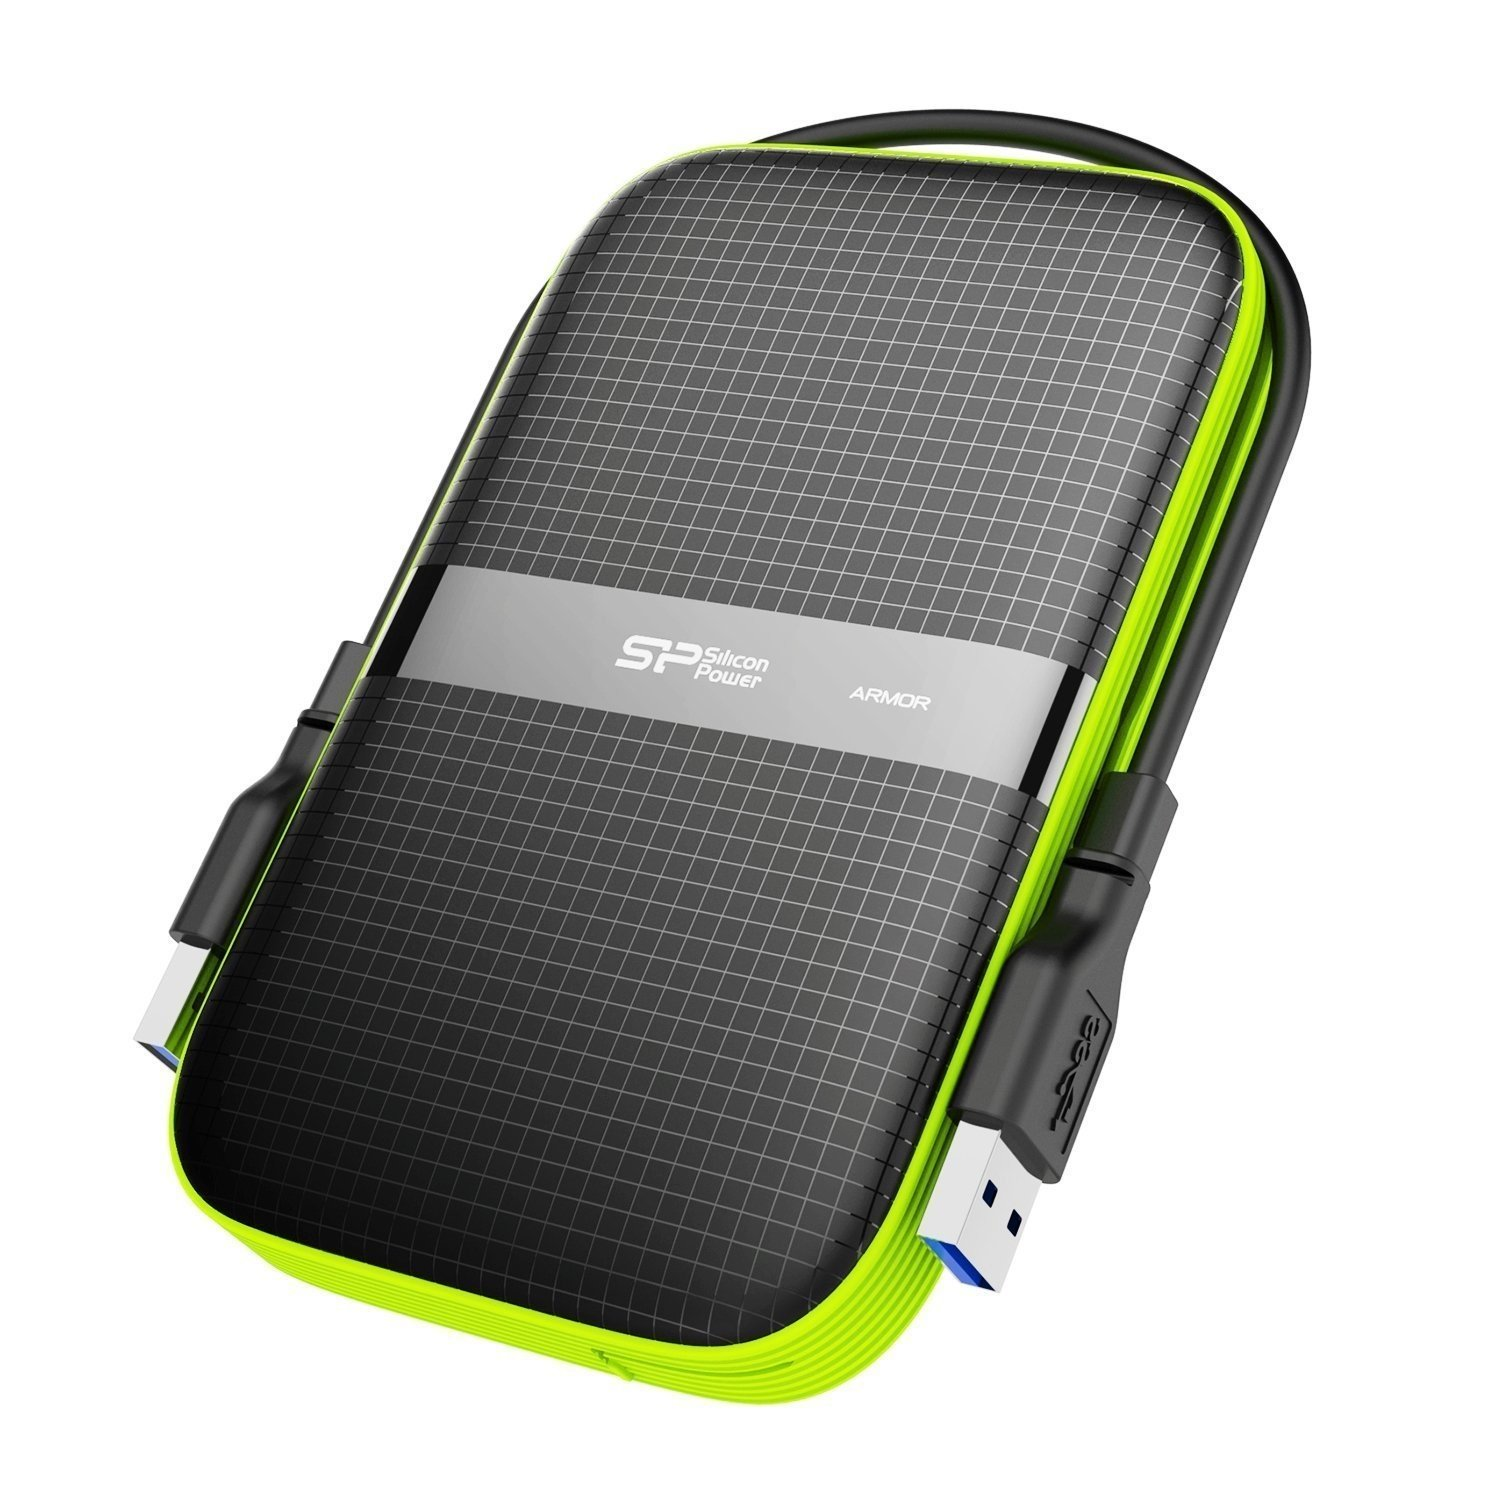 2TB Silicon Power Armor A60 Shockproof Portable Hard Drive - USB3.0 - Black/Green Edition